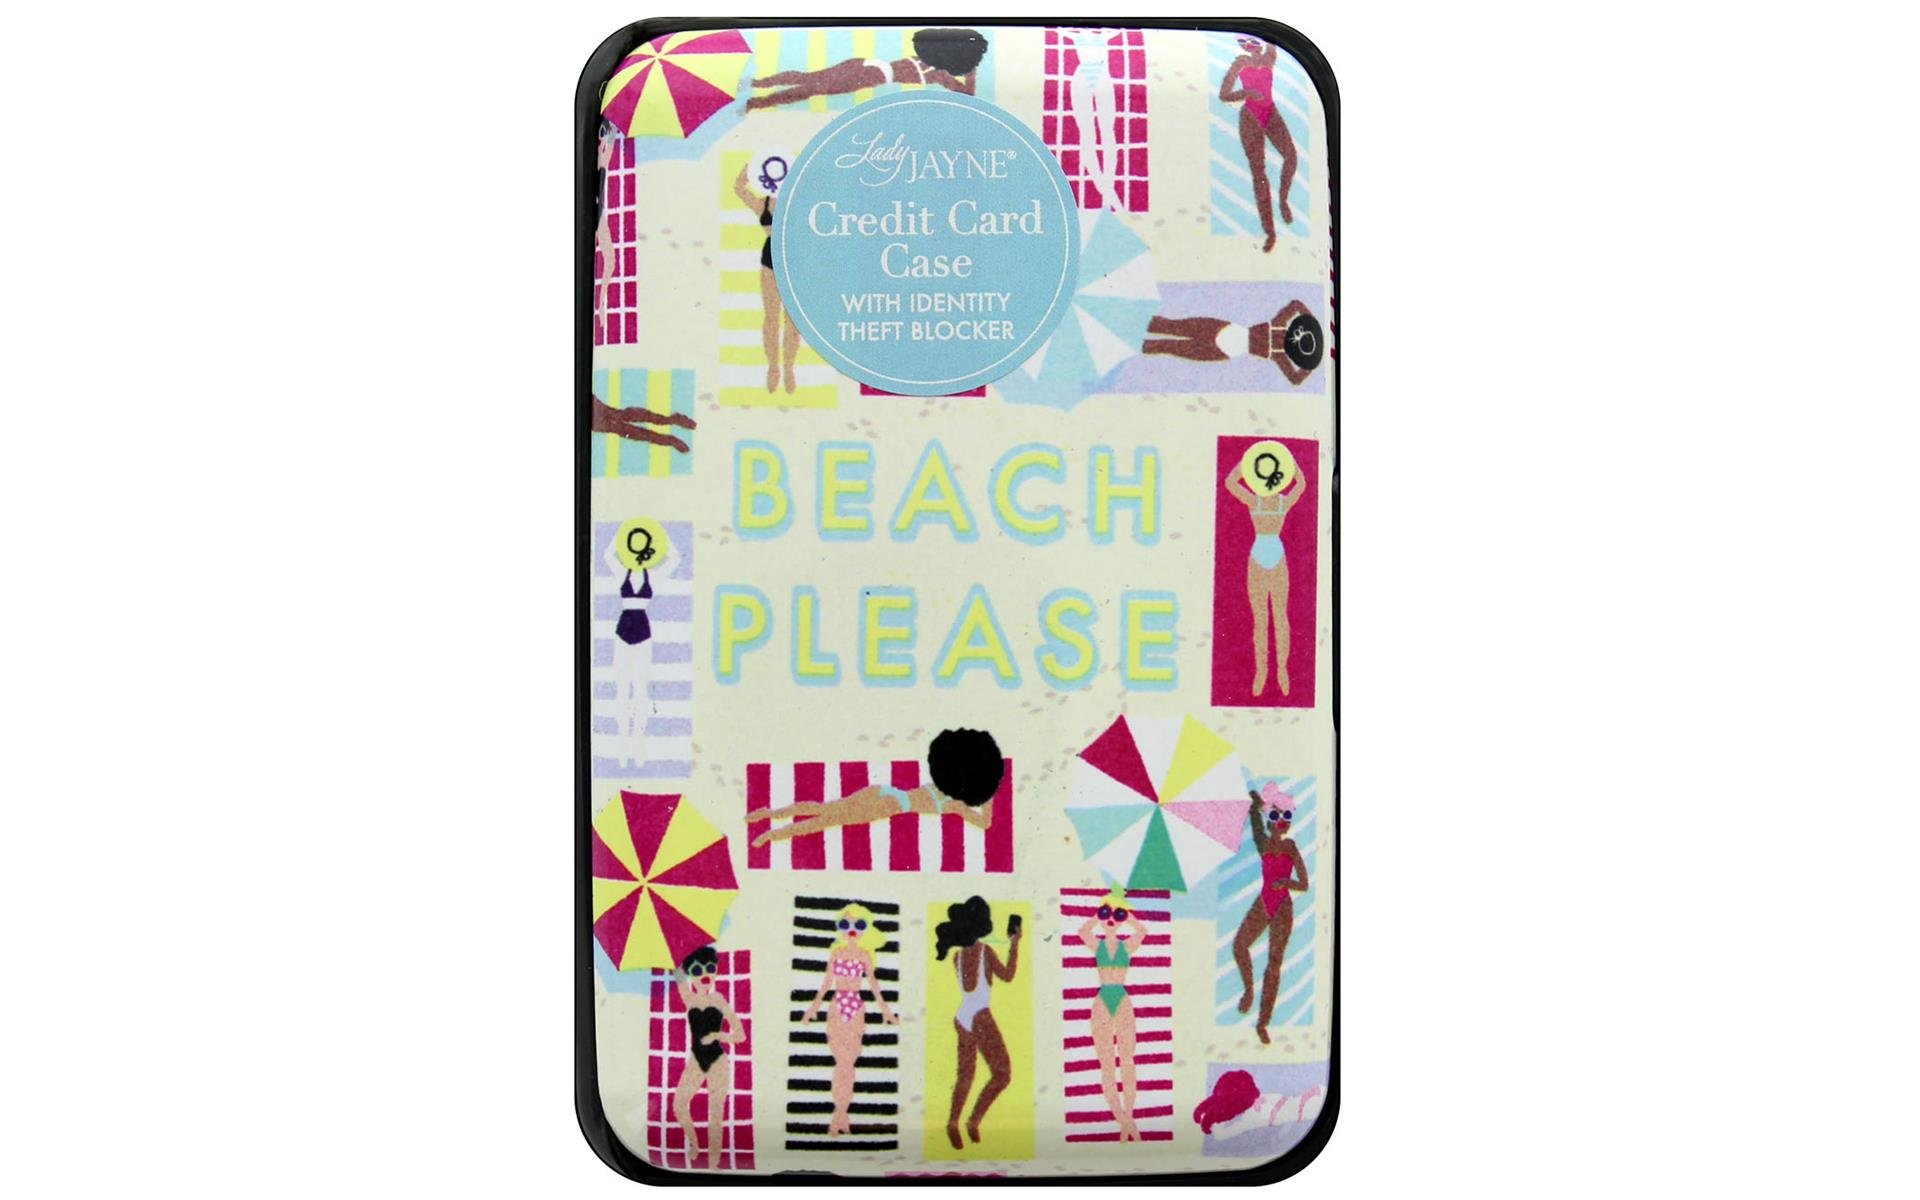 Beach Please credit card case